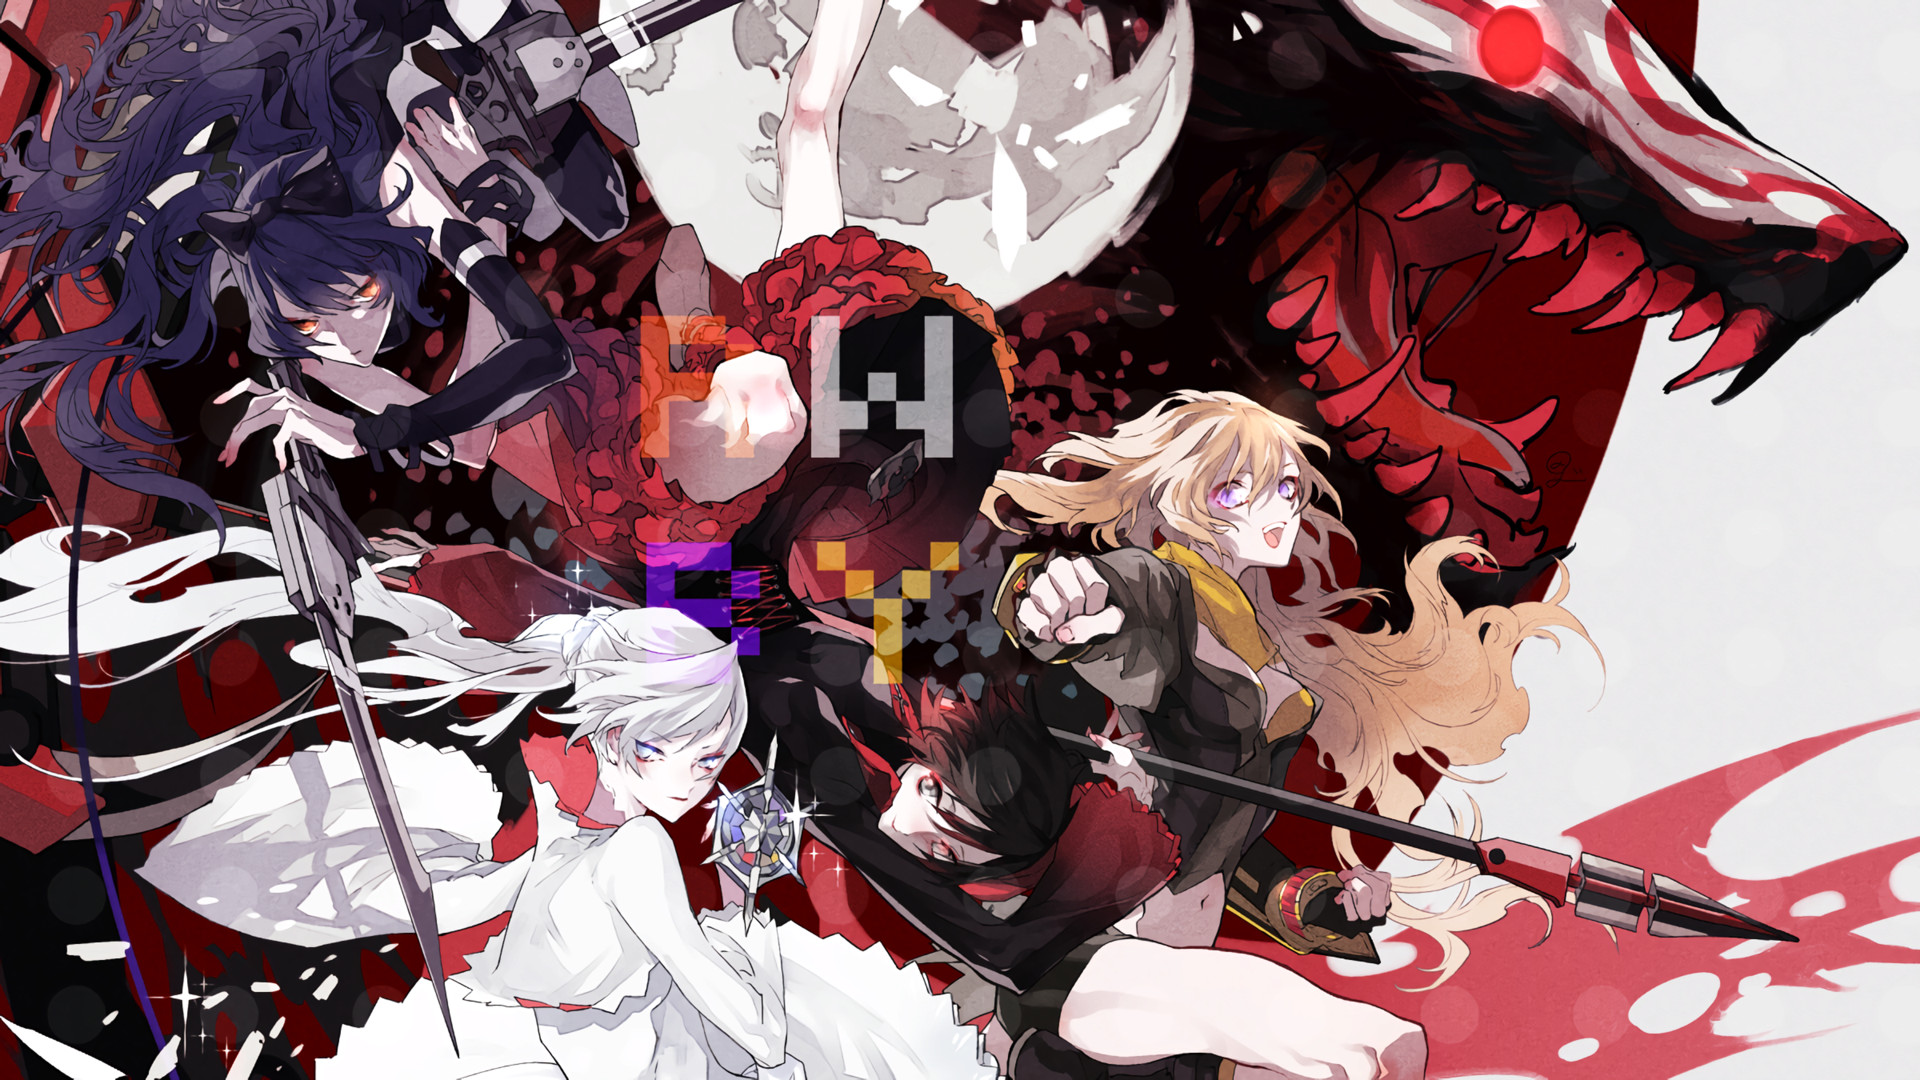 Res: 1920x1080, Anime RWBY Ruby Rose (RWBY) Weiss Schnee Blake Belladonna Yang Xiao Long  Wallpaper